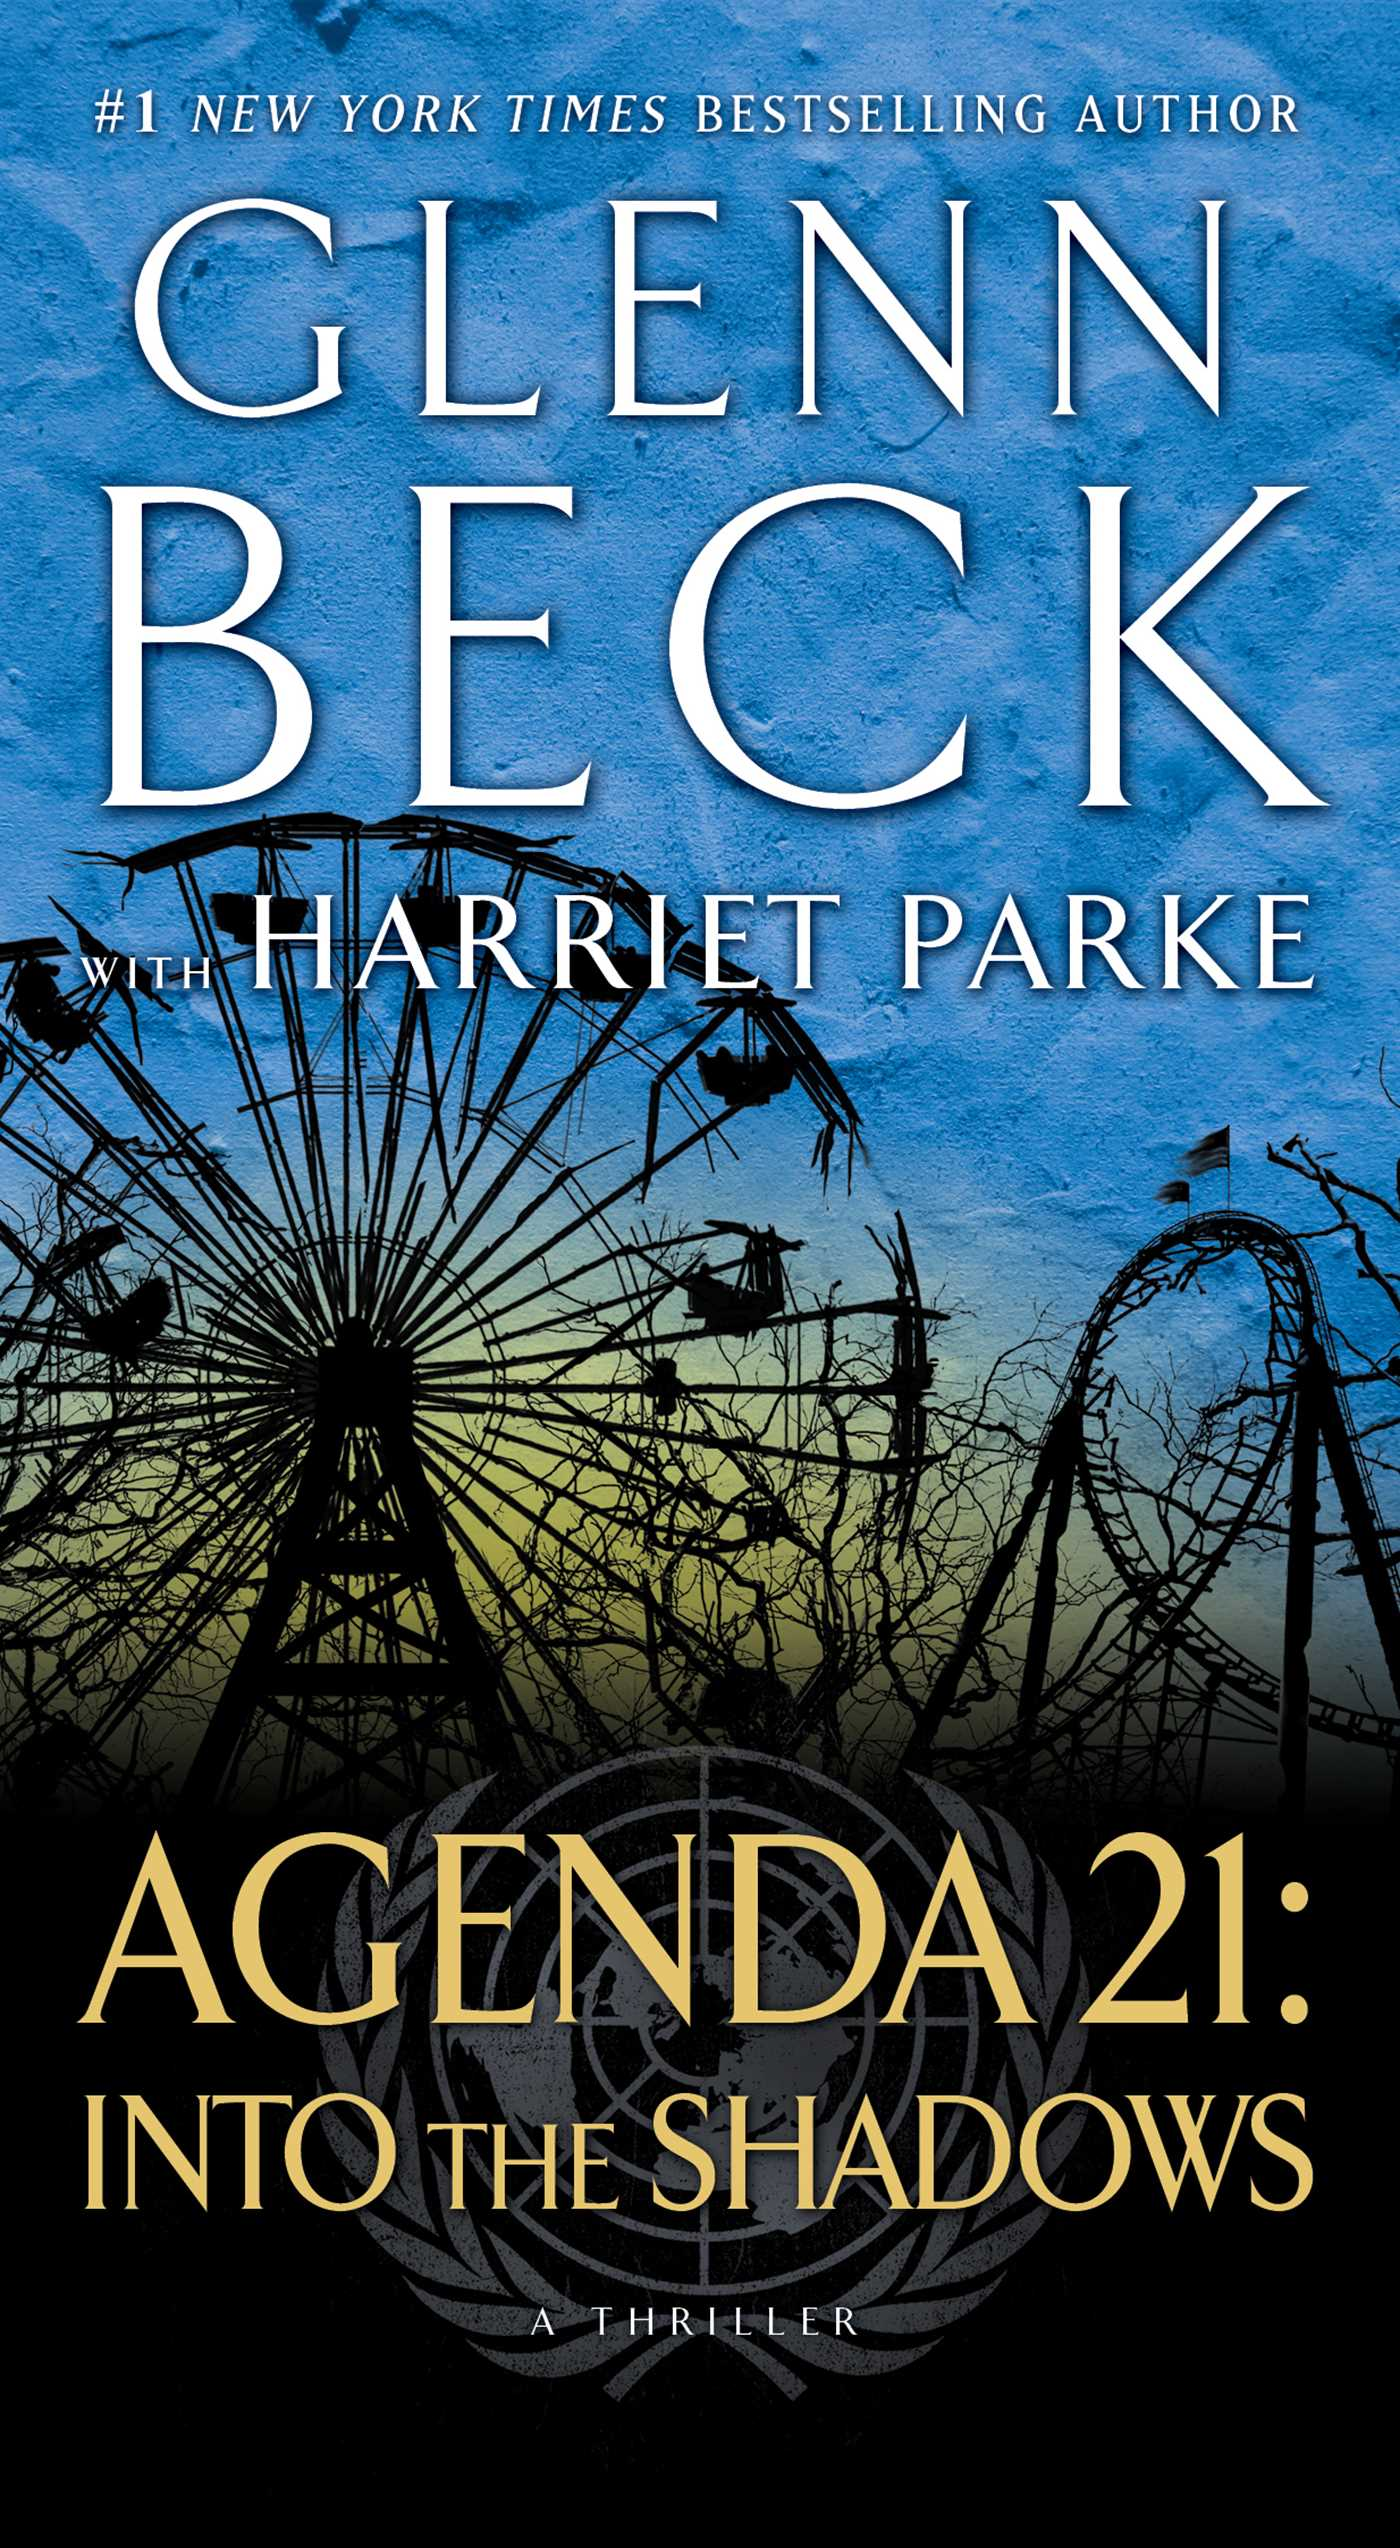 Agenda 21 into the shadows 9781476746845 hr